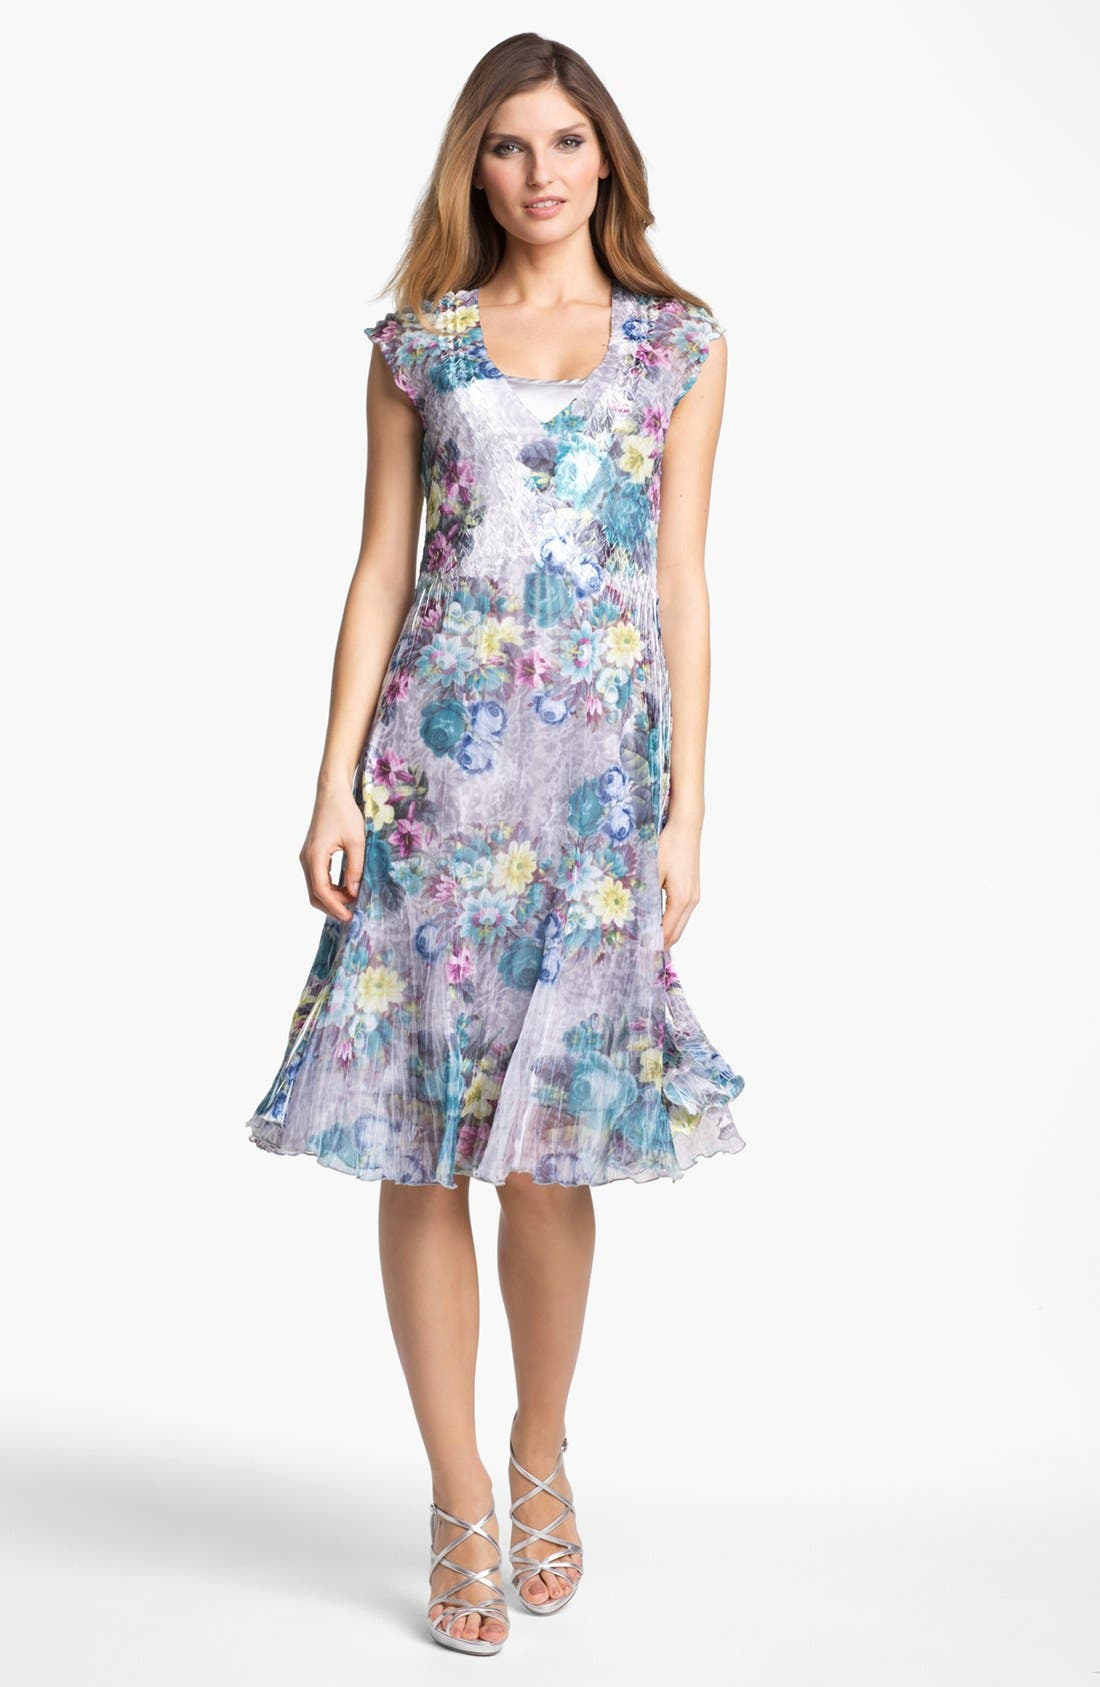 Alternate Image 1 Selected - Komarov Floral Print Textured Chiffon Dress